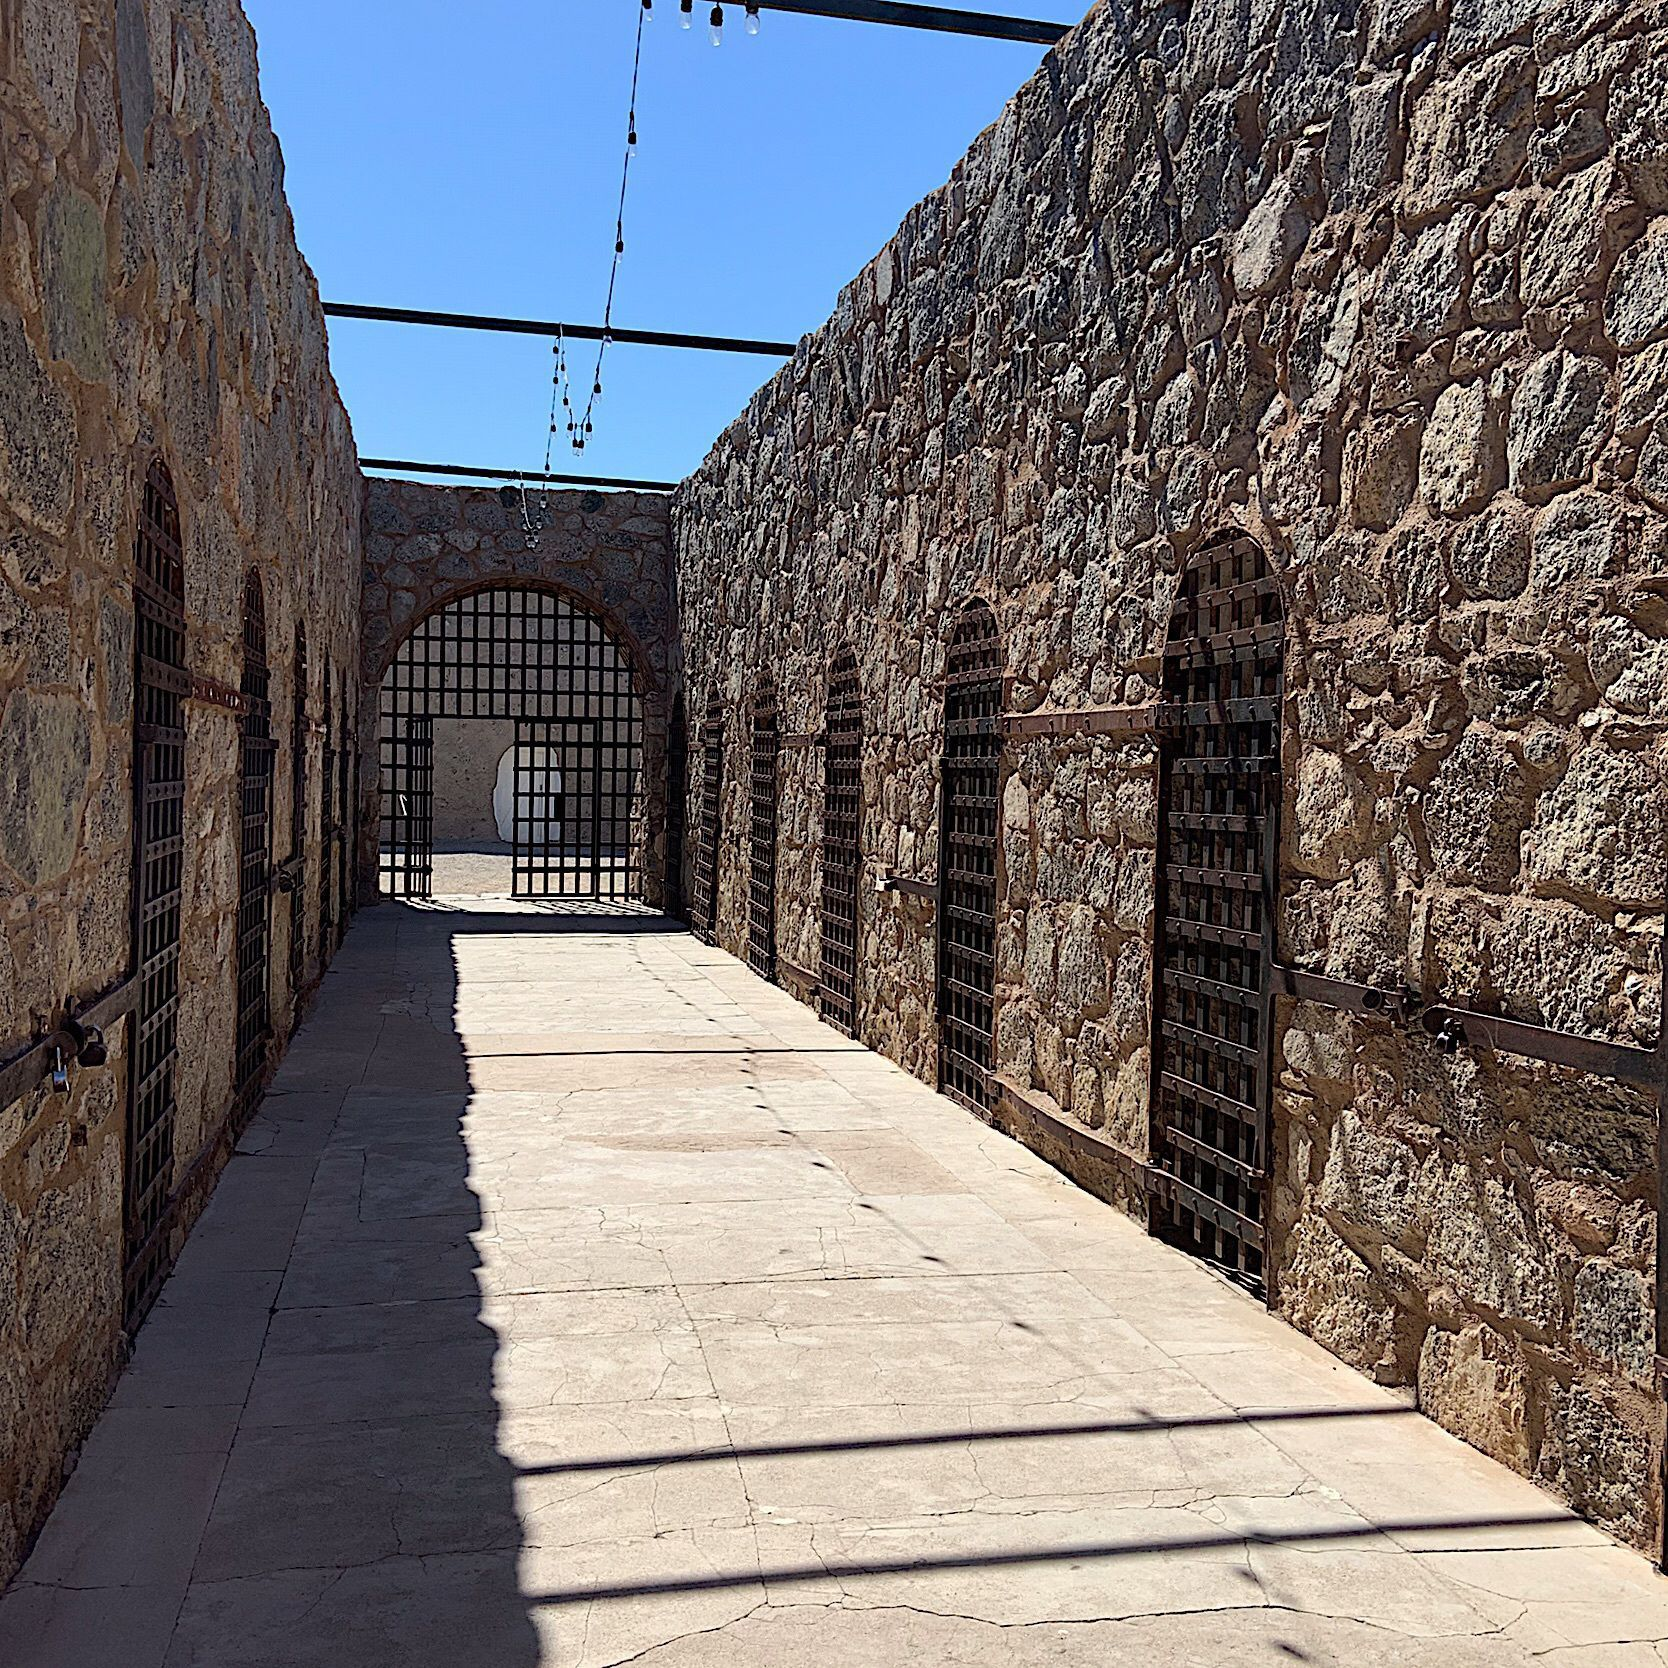 Prison Cells at the Yuma Territorial Prison State Park